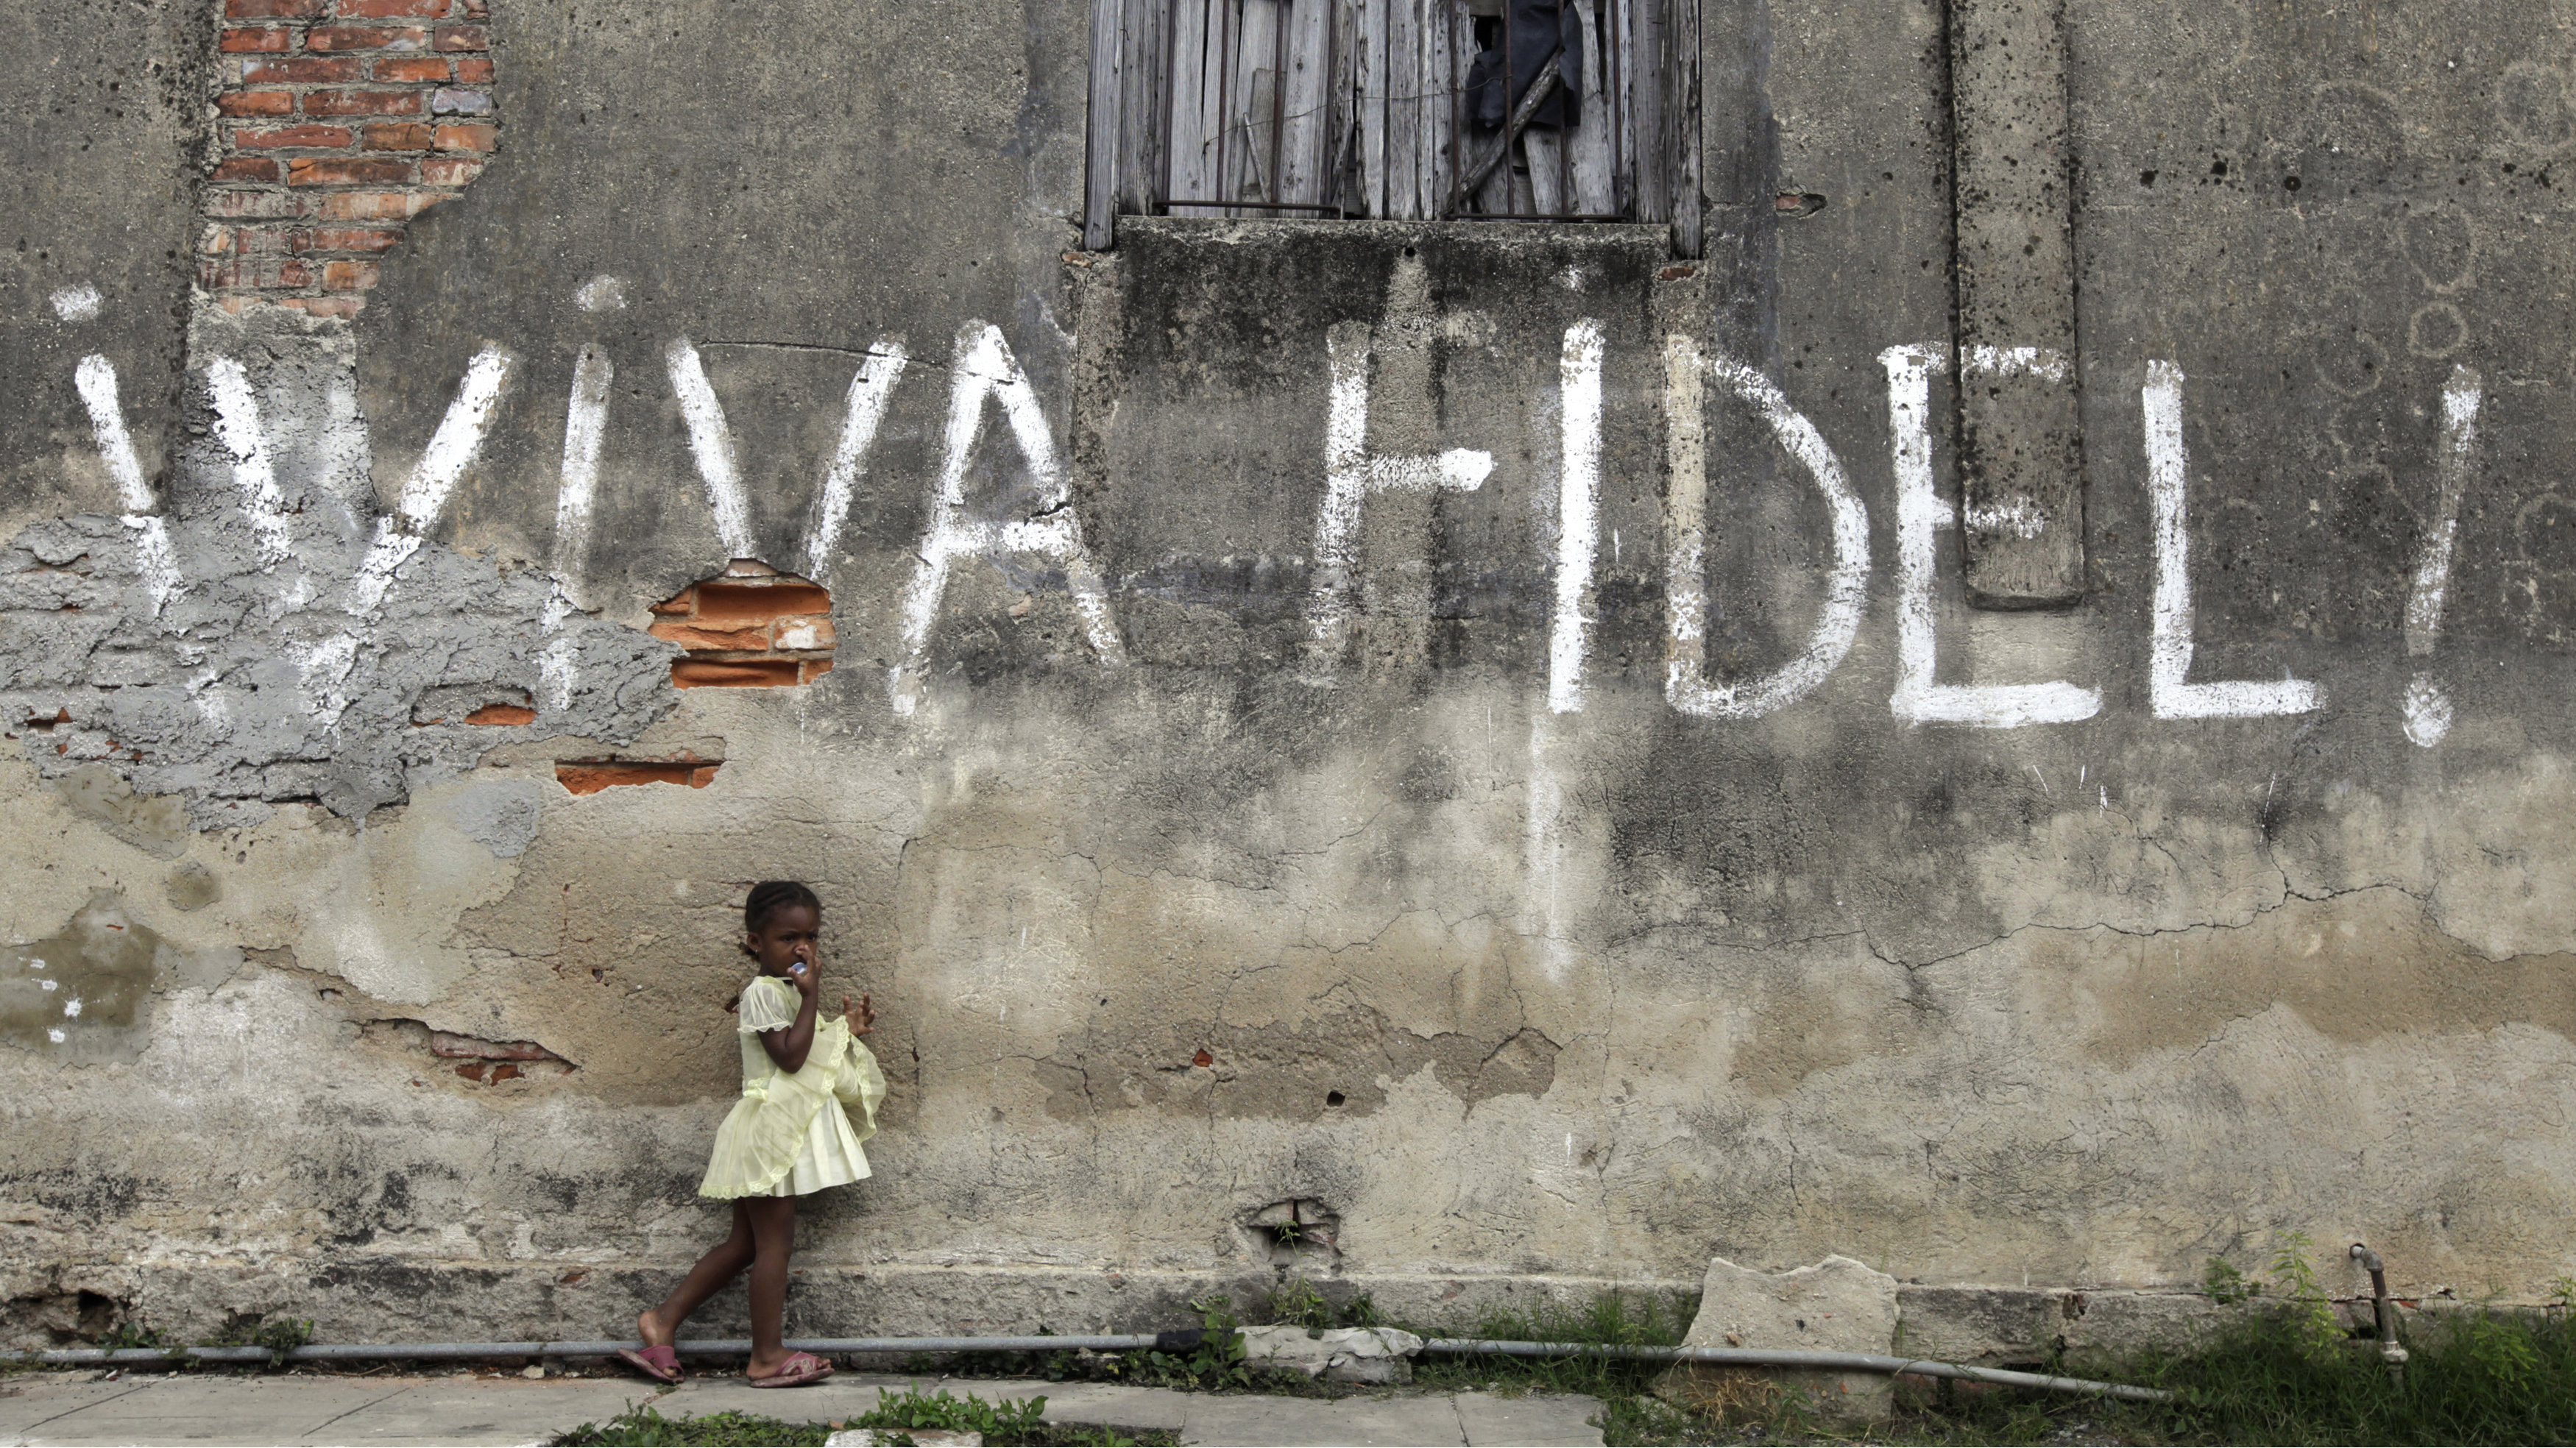 """A girl stands next to graffiti that reads """"Viva Fidel"""" (Long live Fidel), in Cuba's western province of Pinar del Rio February 23, 2010."""